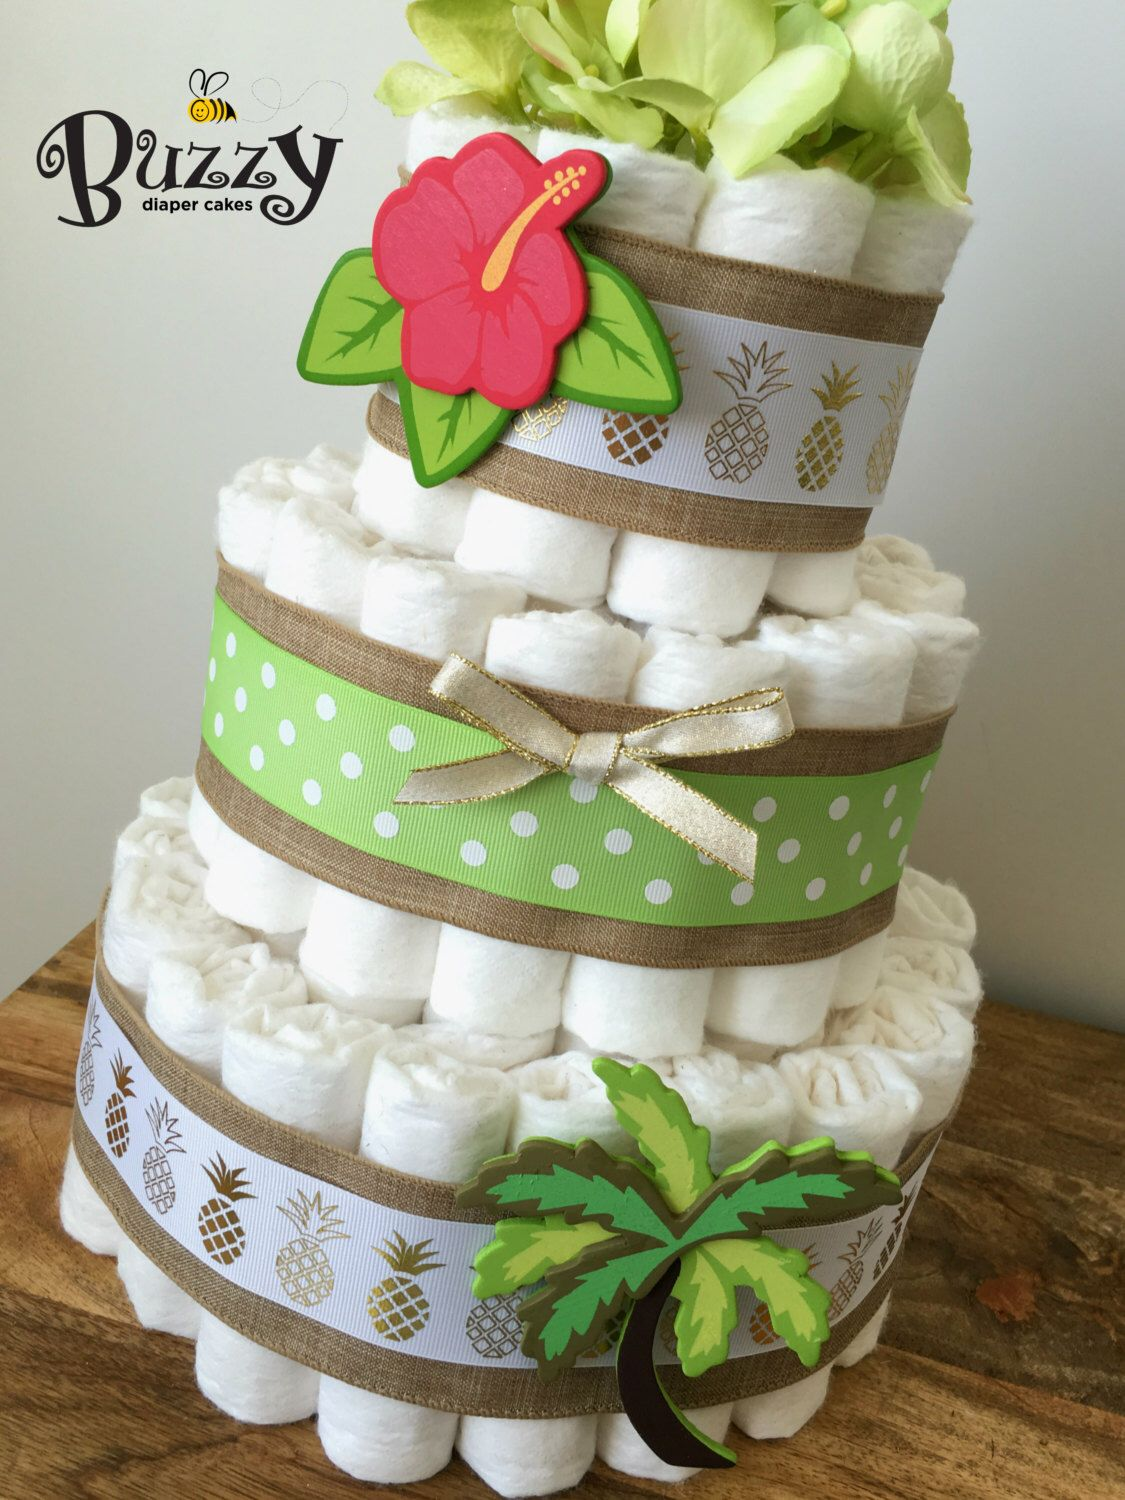 Pin by Kristy Williams-Rabon on Parties | Pinterest